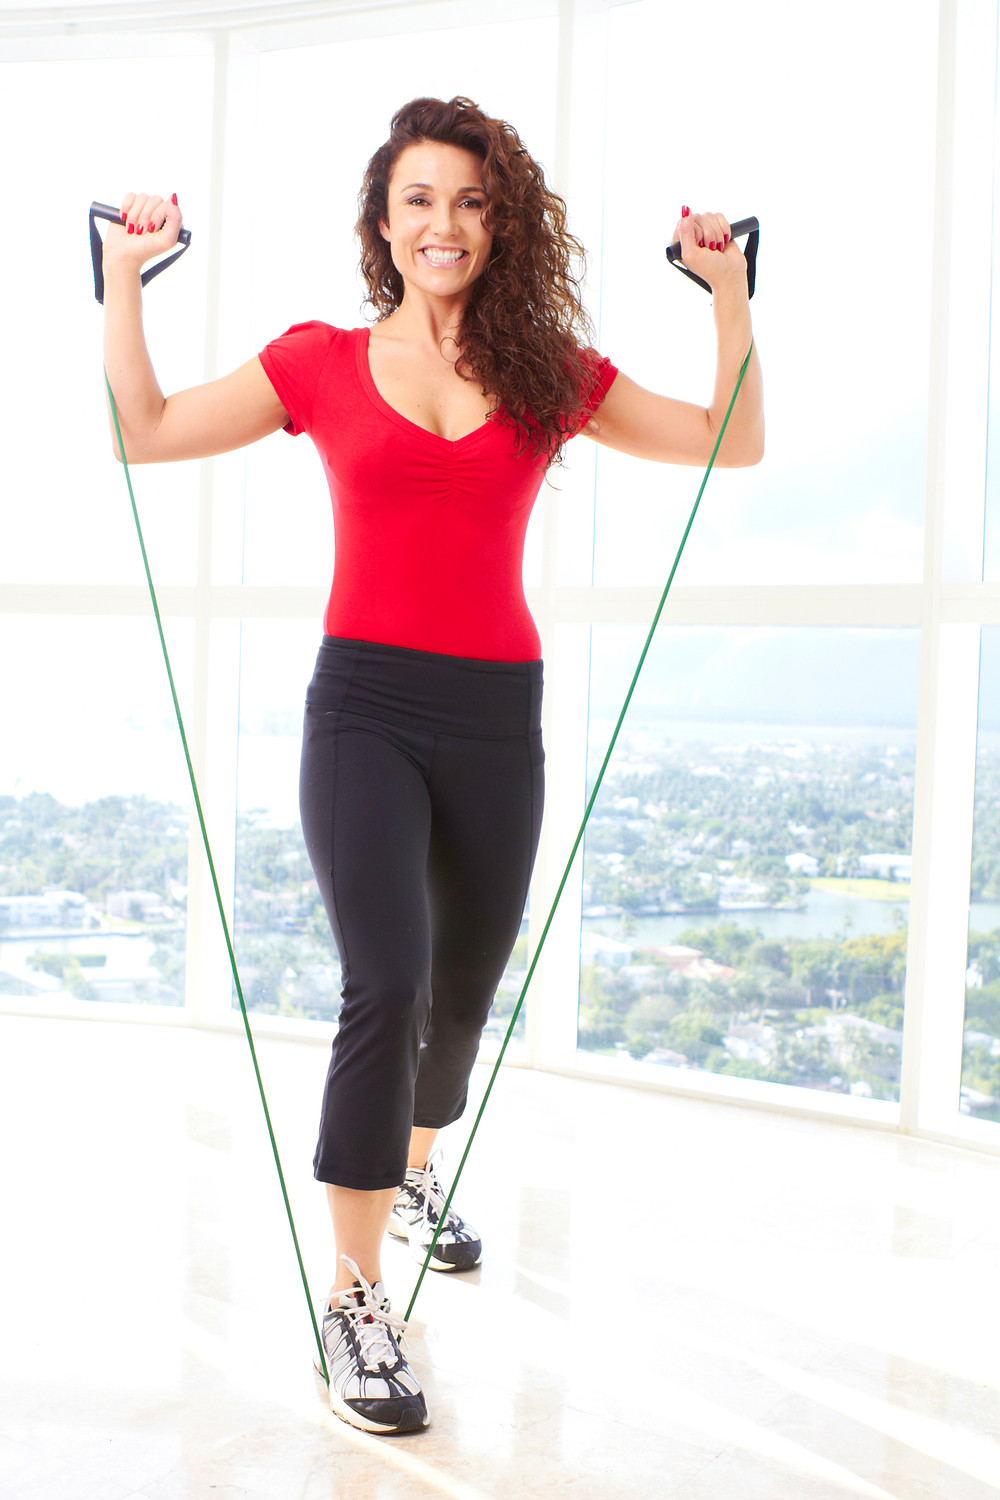 strength training at home, resistance bands for strength training